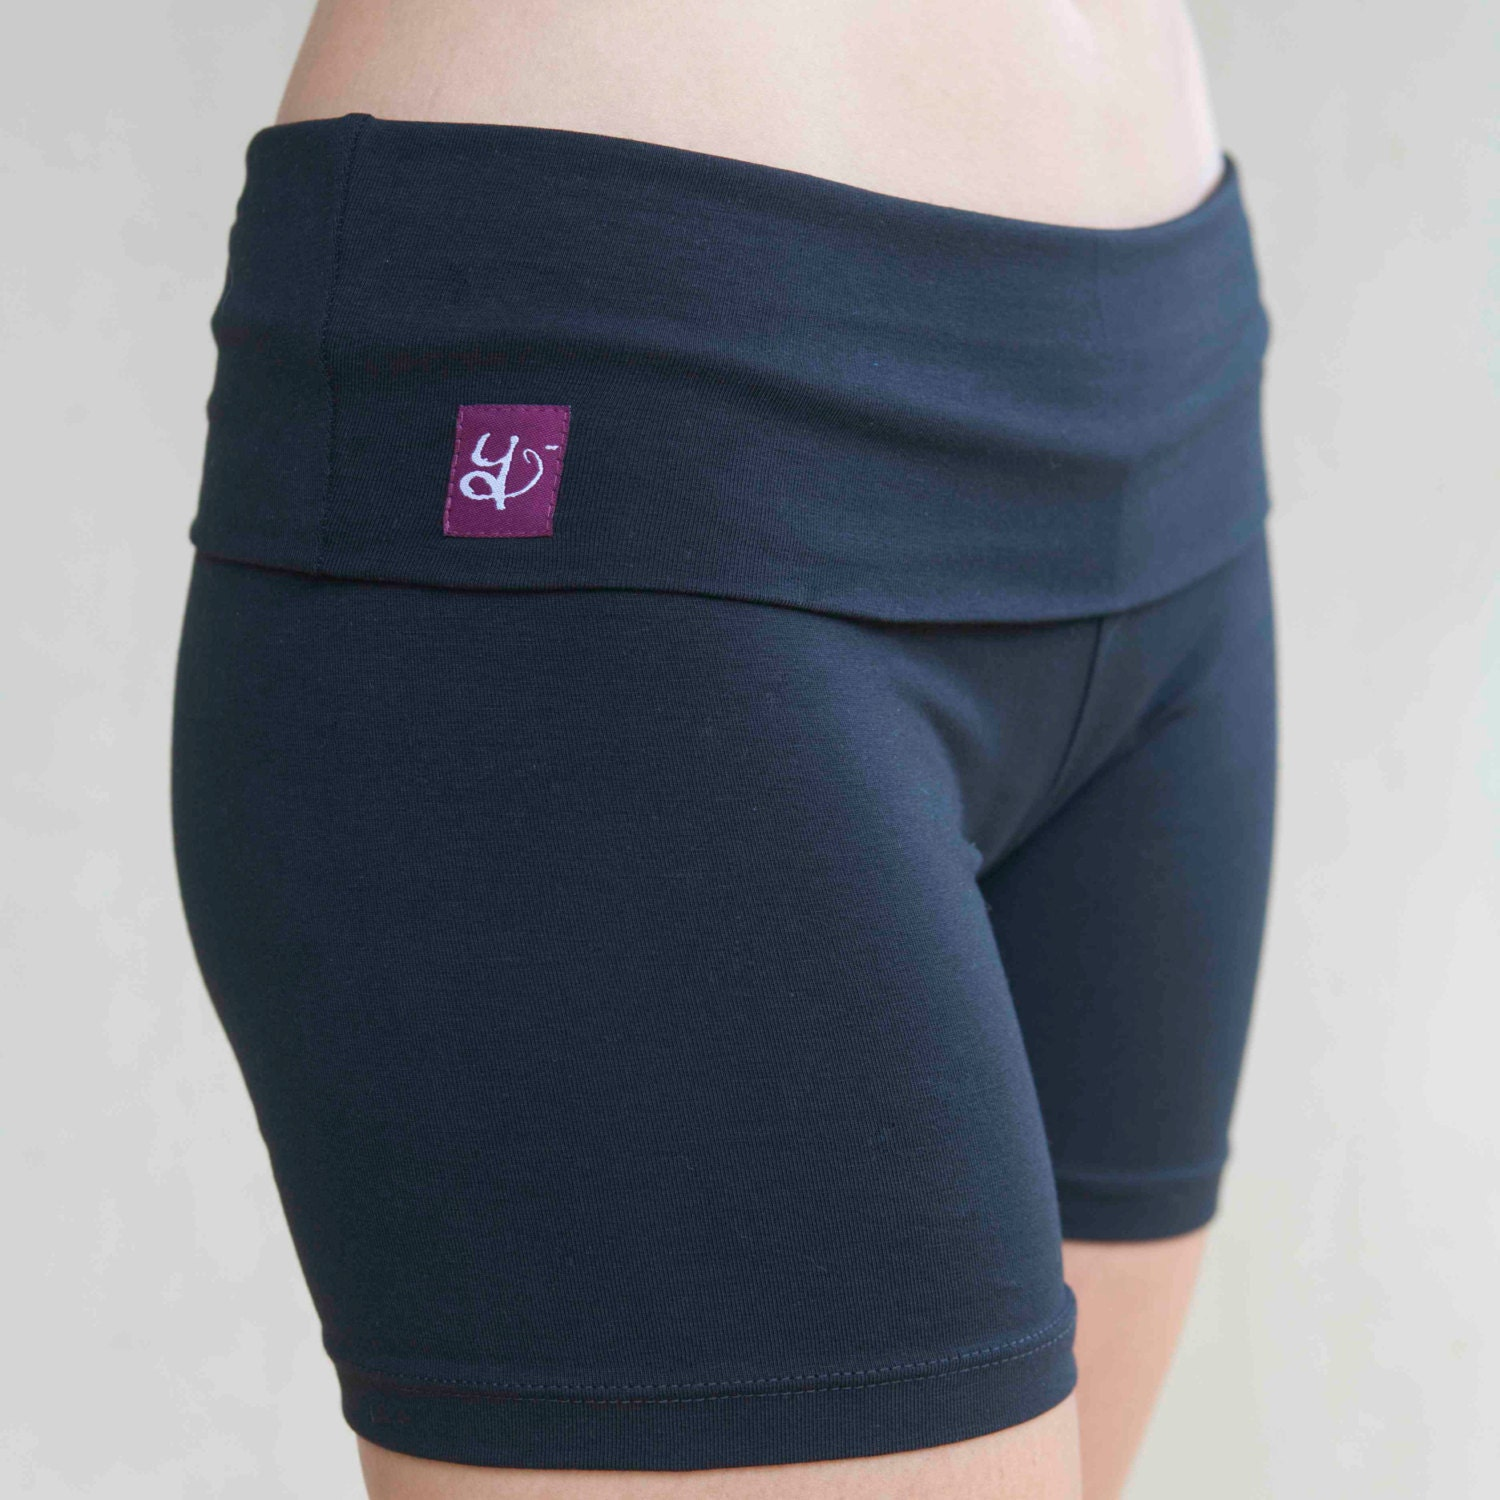 Cotton Yoga Shorts For Women 'Trini